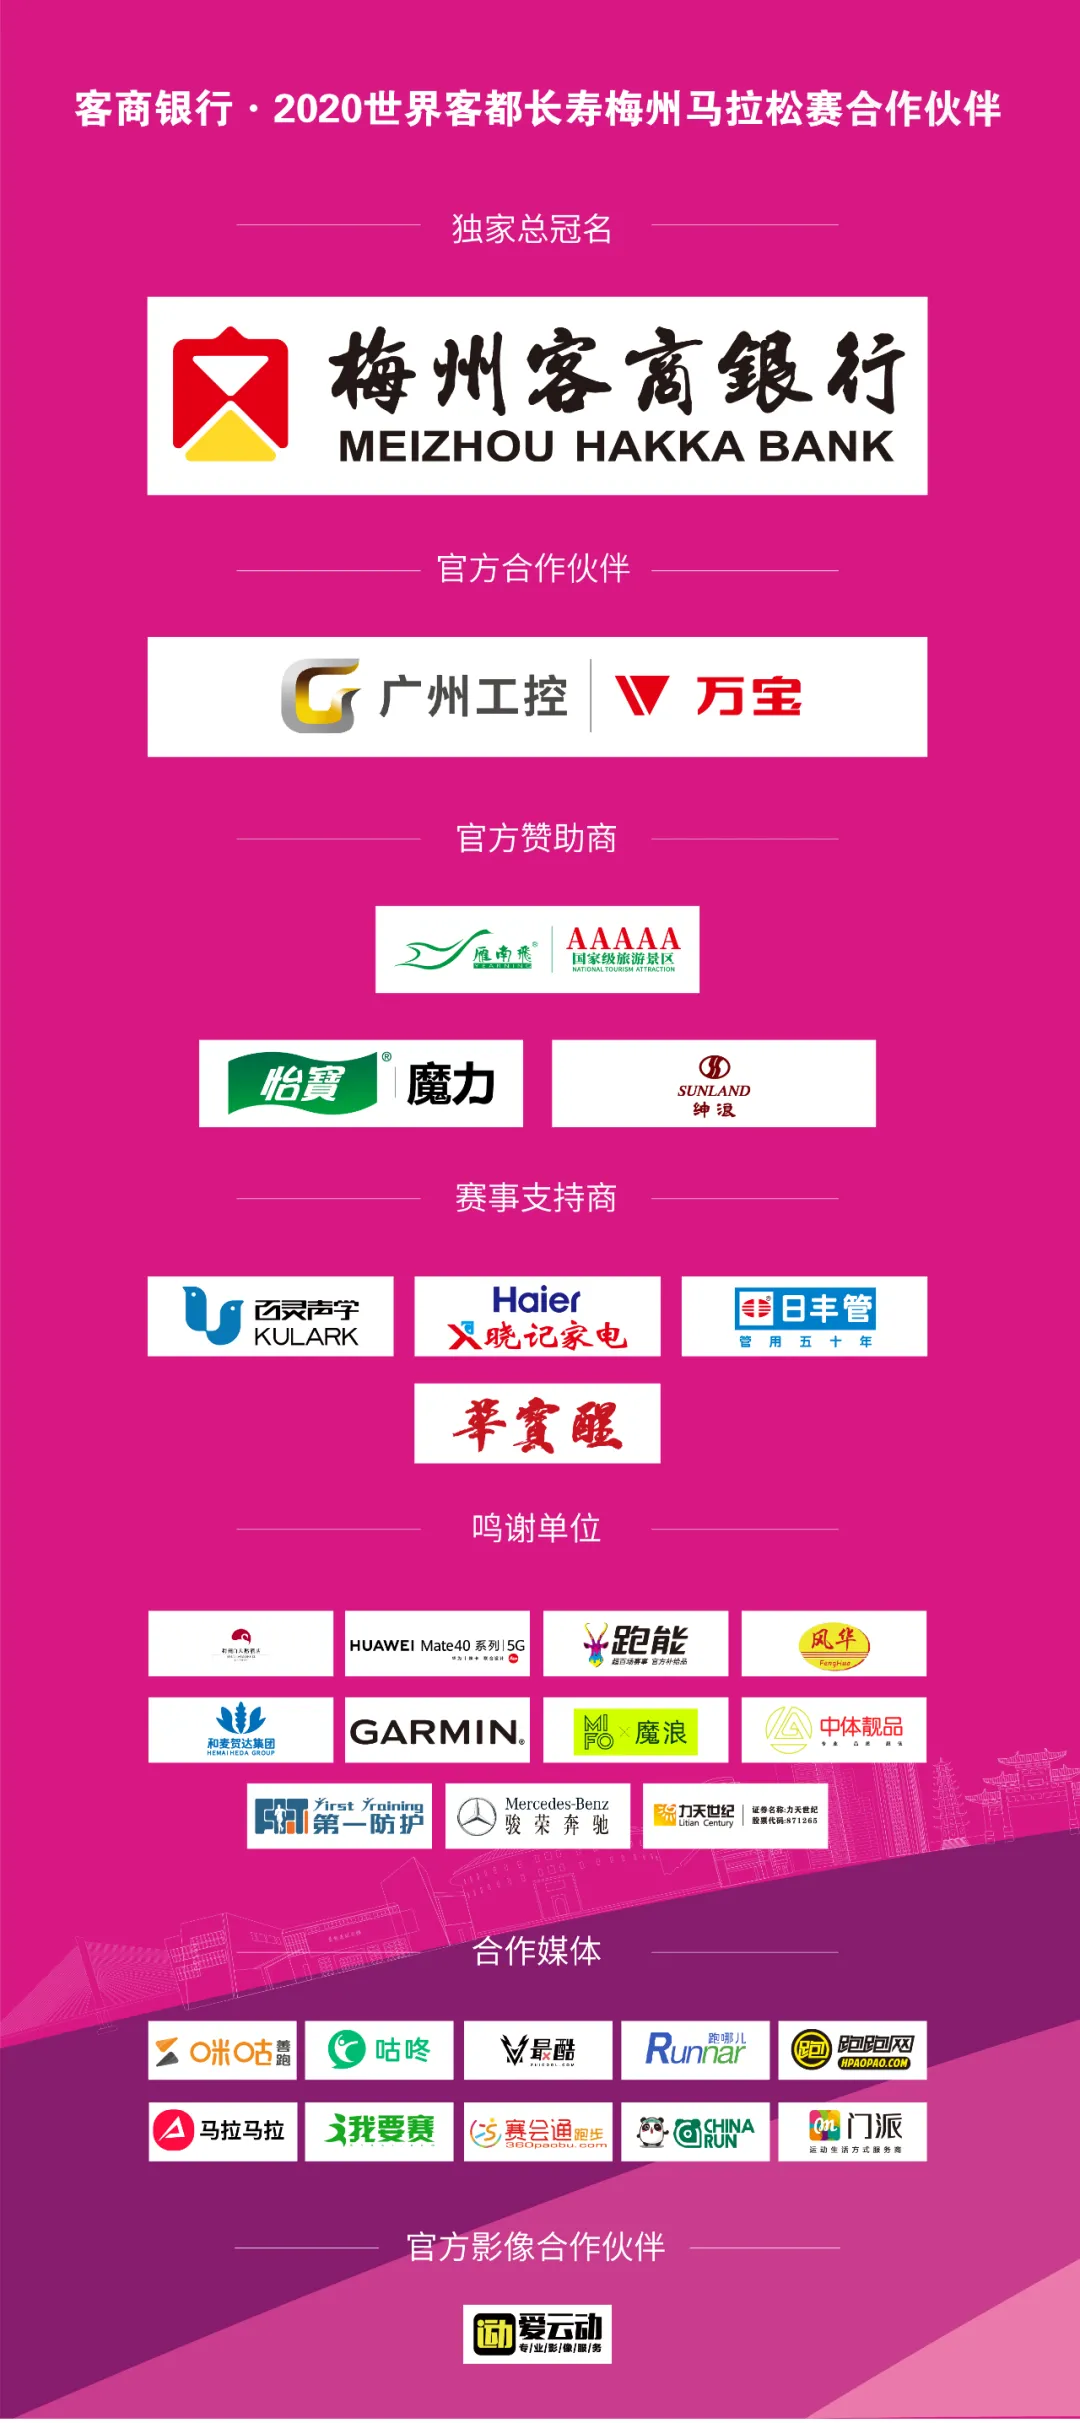 http://img.sport-china.cn/210106155ff56718e33fe.png